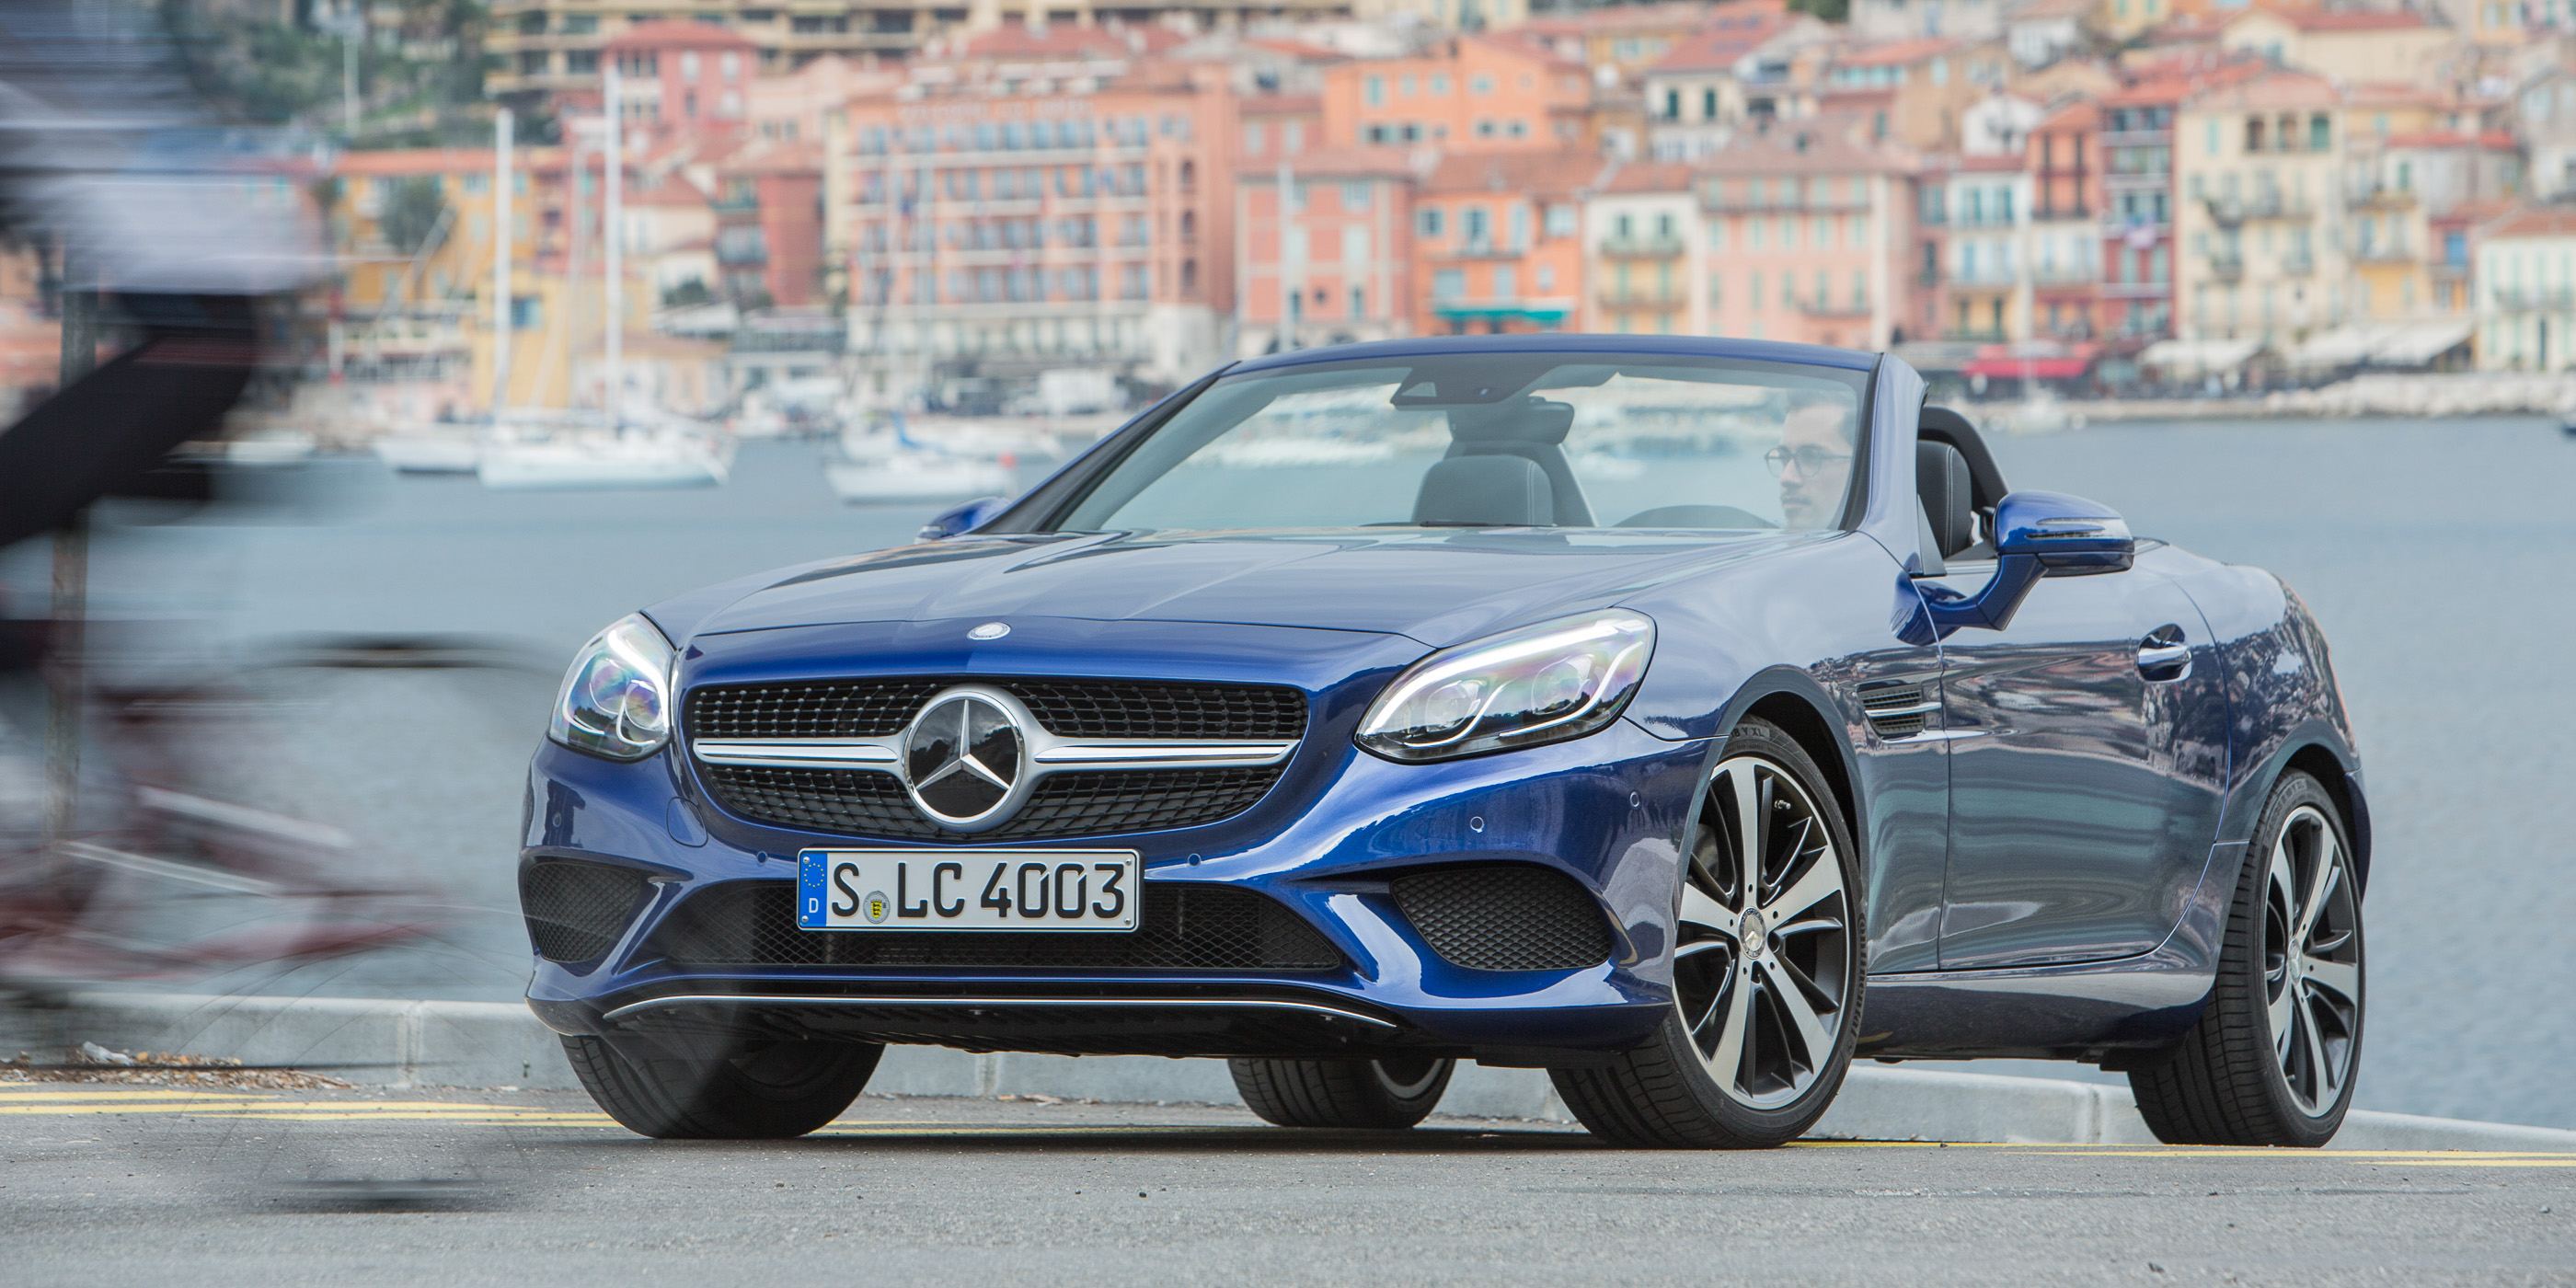 2016 mercedes benz slc review slc300 and slc43 amg for Slc mercedes benz